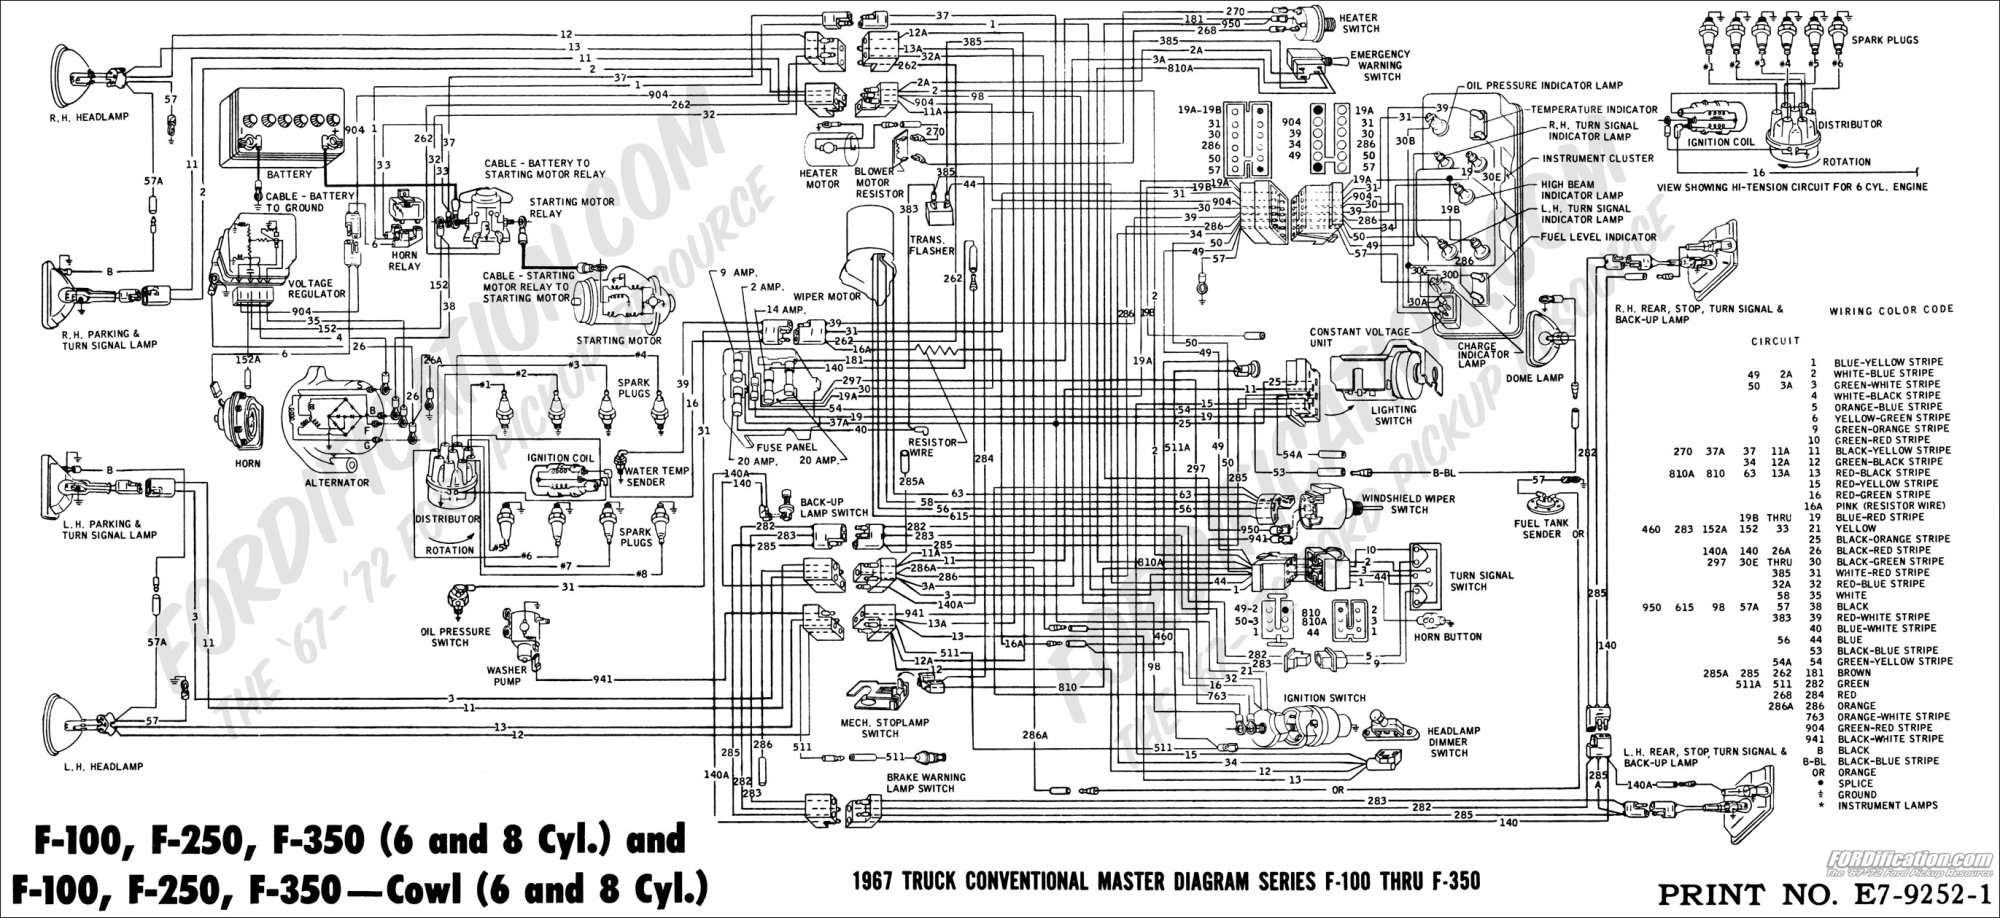 hight resolution of 1968 ford truck wiring diagram wiring diagram inside 1968 ford torino wiring diagram 1968 ford wiring diagram